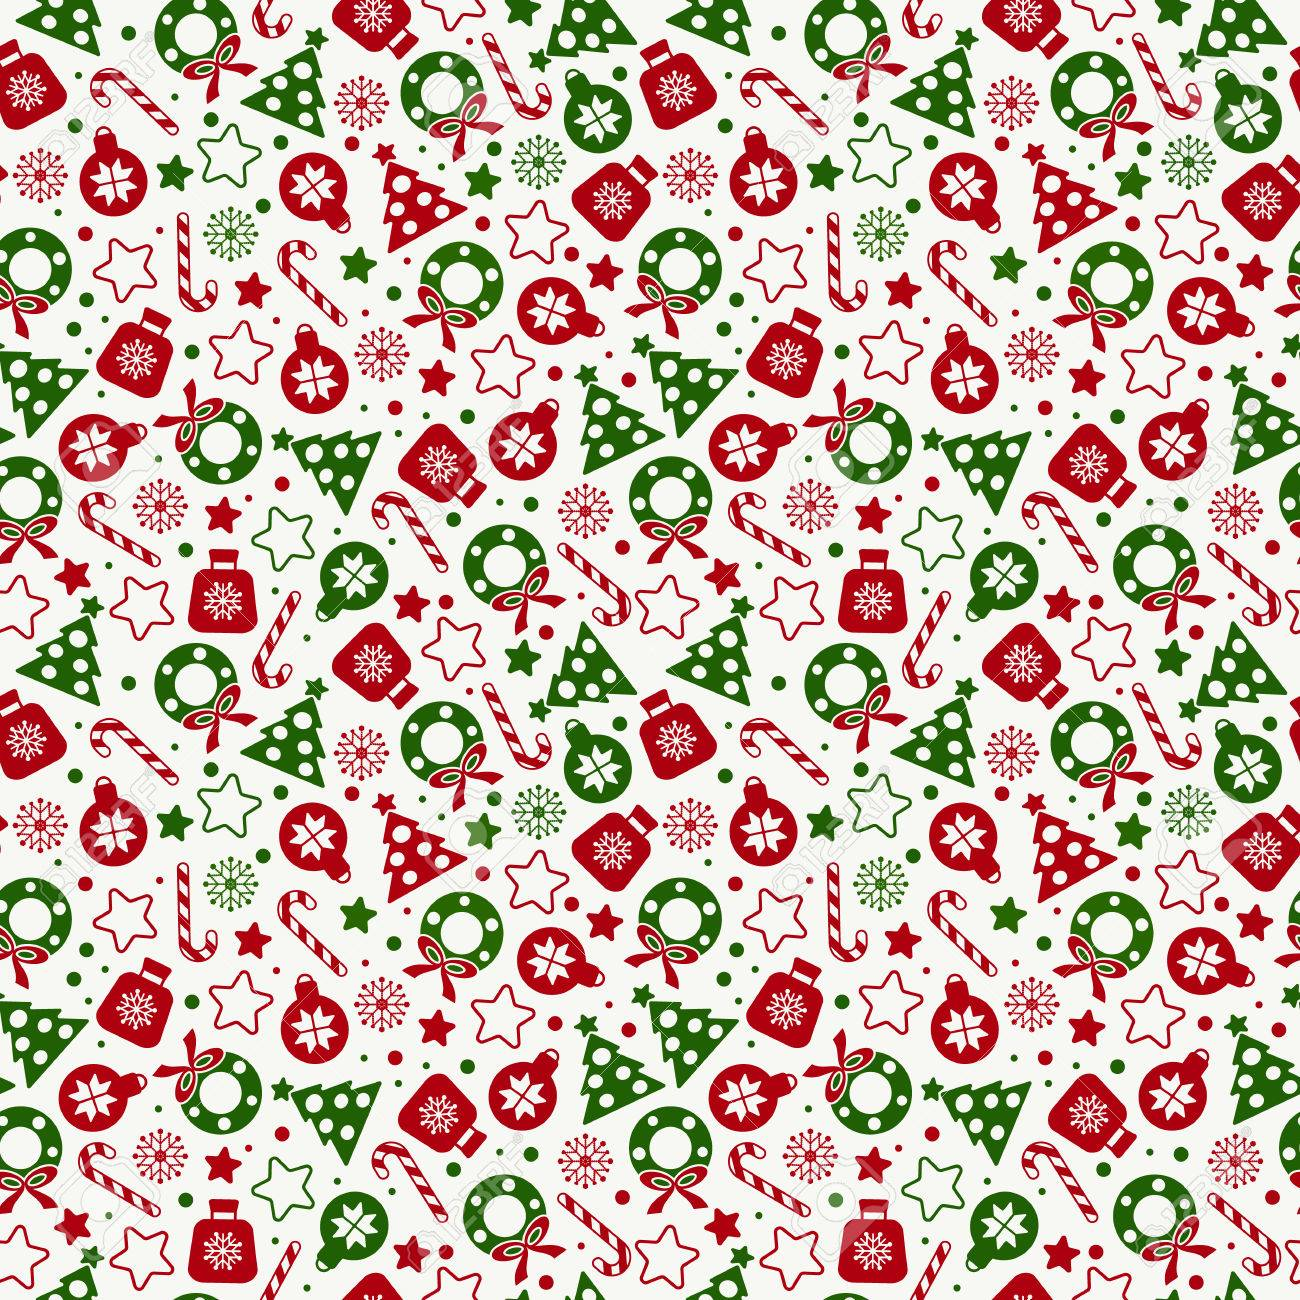 Christmas Texture.Seamless Pattern Of Christmas Texture Icons On White Background